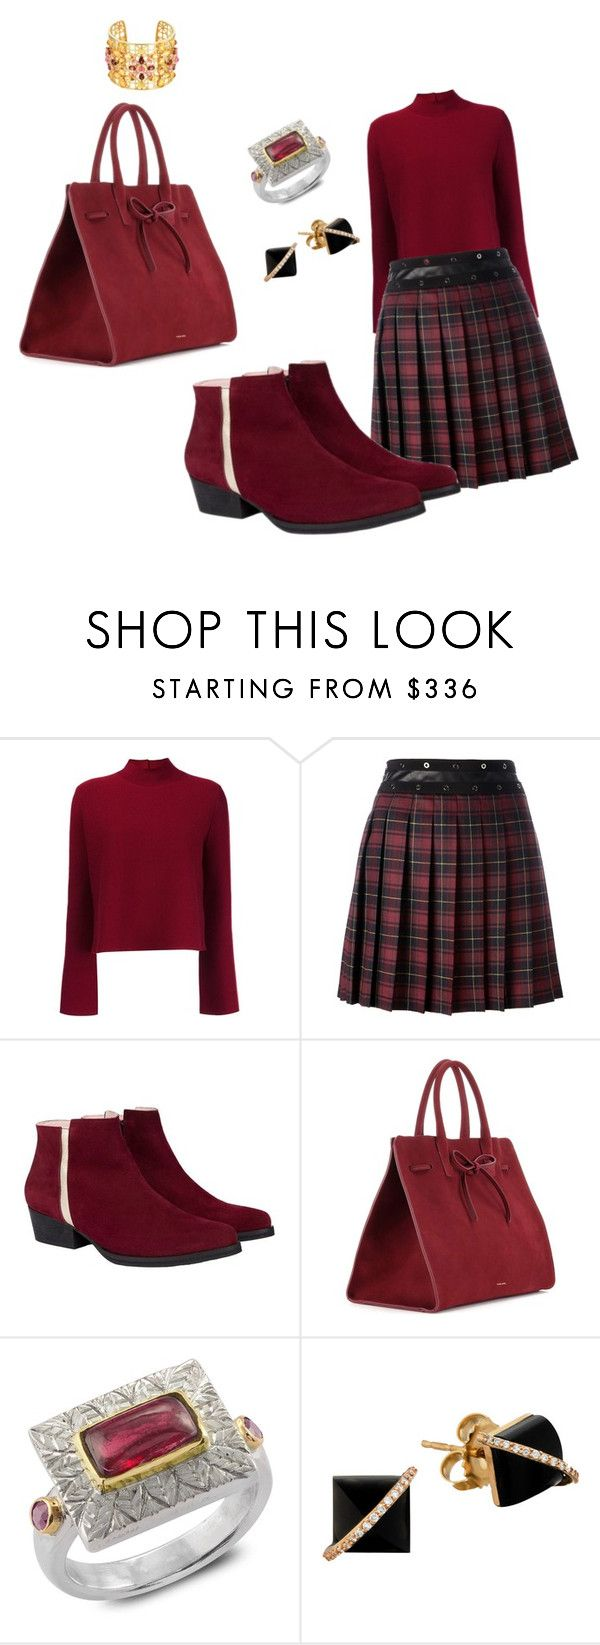 """""""red light camera"""" by inspiredbyart345 ❤ liked on Polyvore featuring Proenza Schouler, Giamba, Mansur Gavriel, Emma Chapman and Madyha Farooqui"""